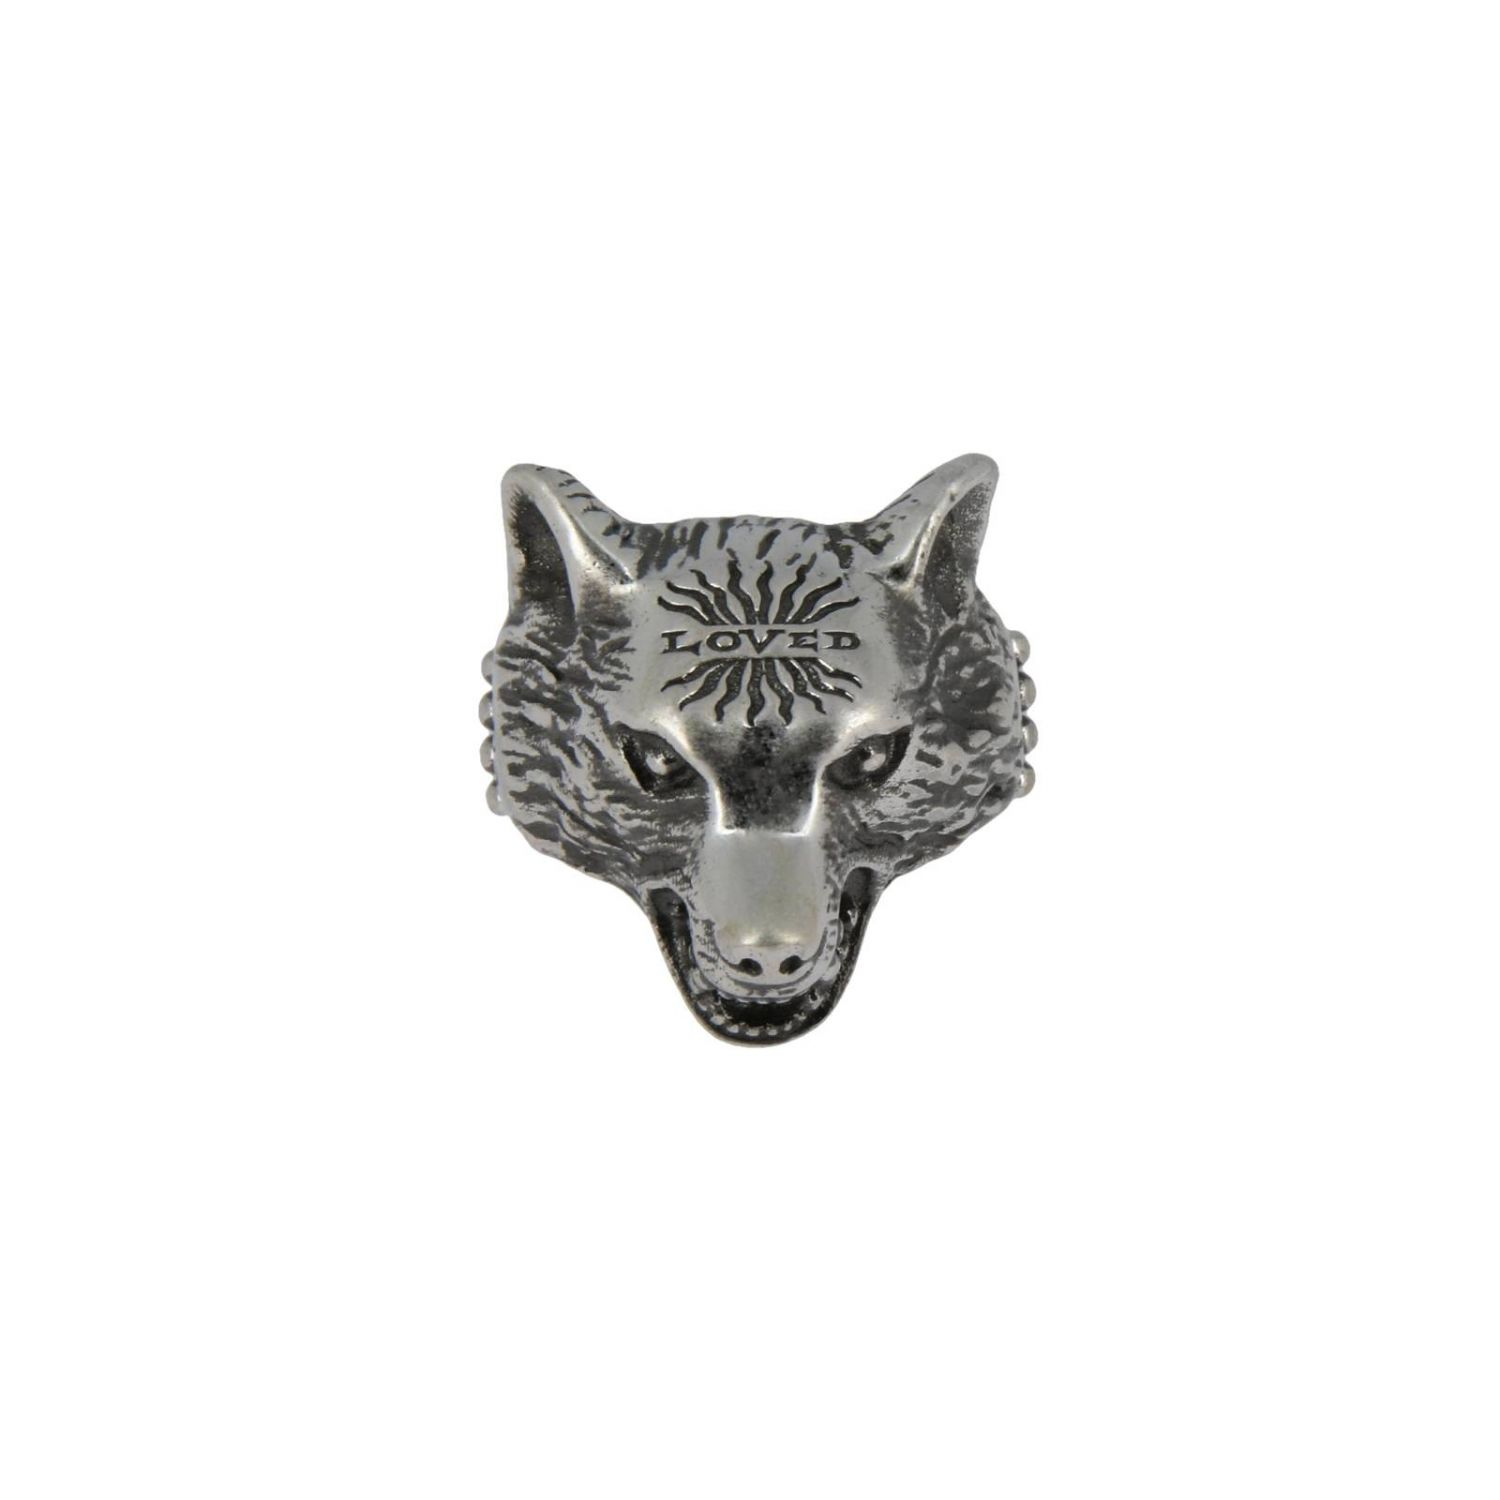 Anello Anger Forest Wolf s in argento sterling con finitura aureco argento 1